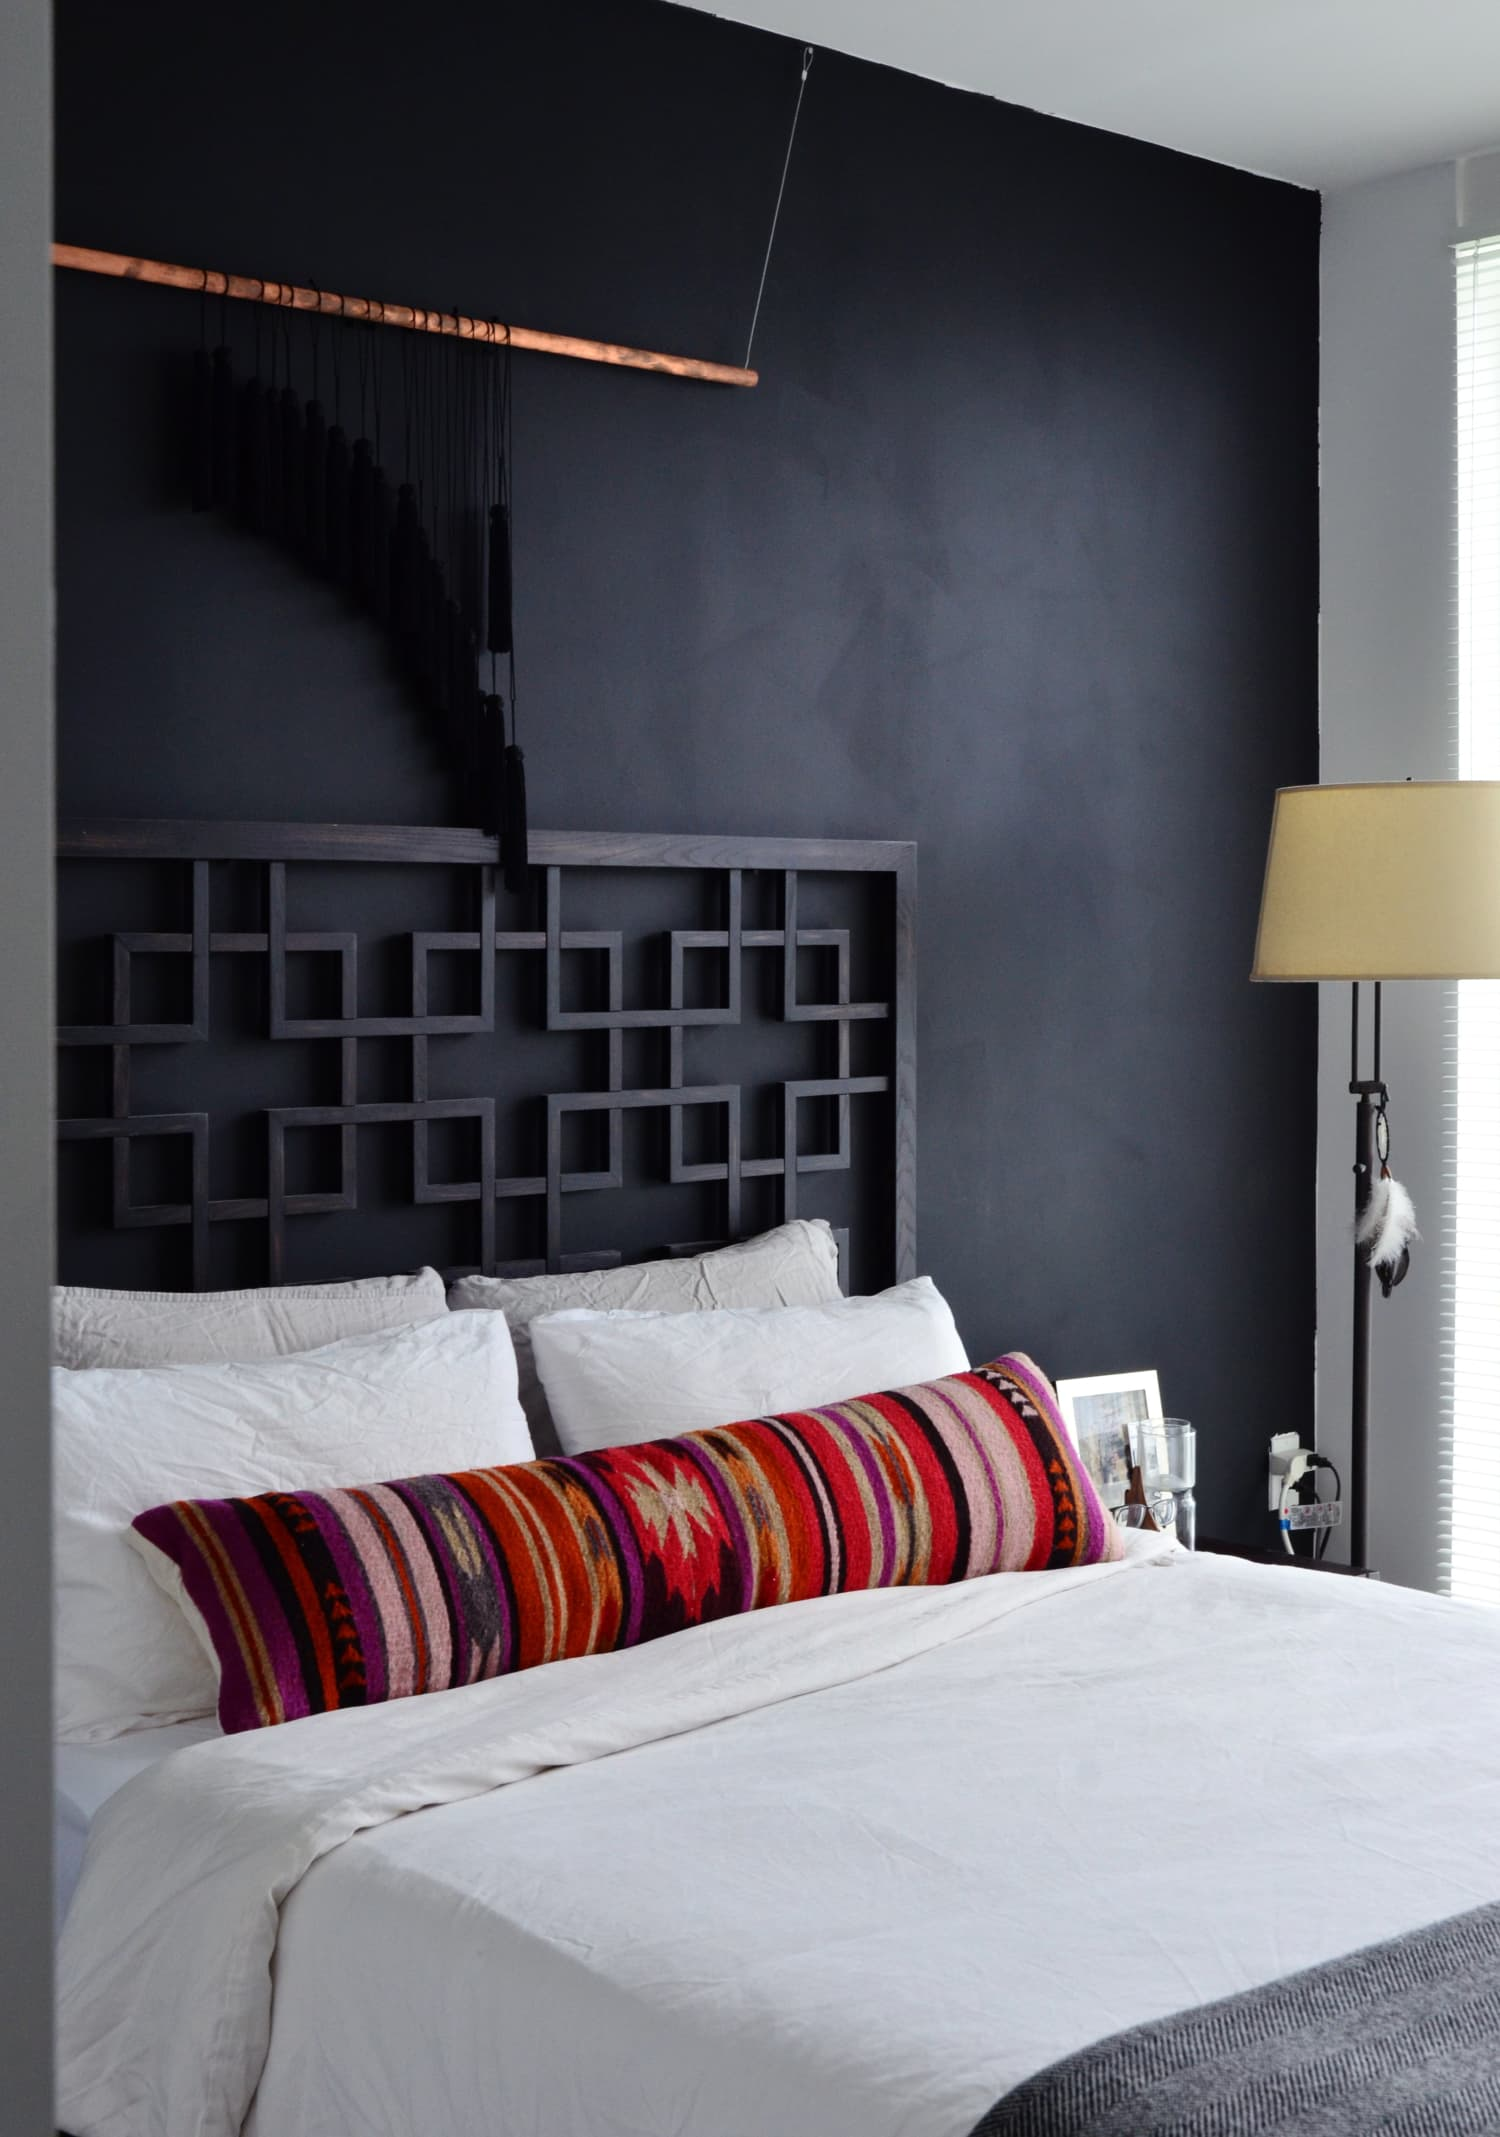 18 Dramatic Black Bedroom Ideas That Will Inspire You to Rethink the Hue